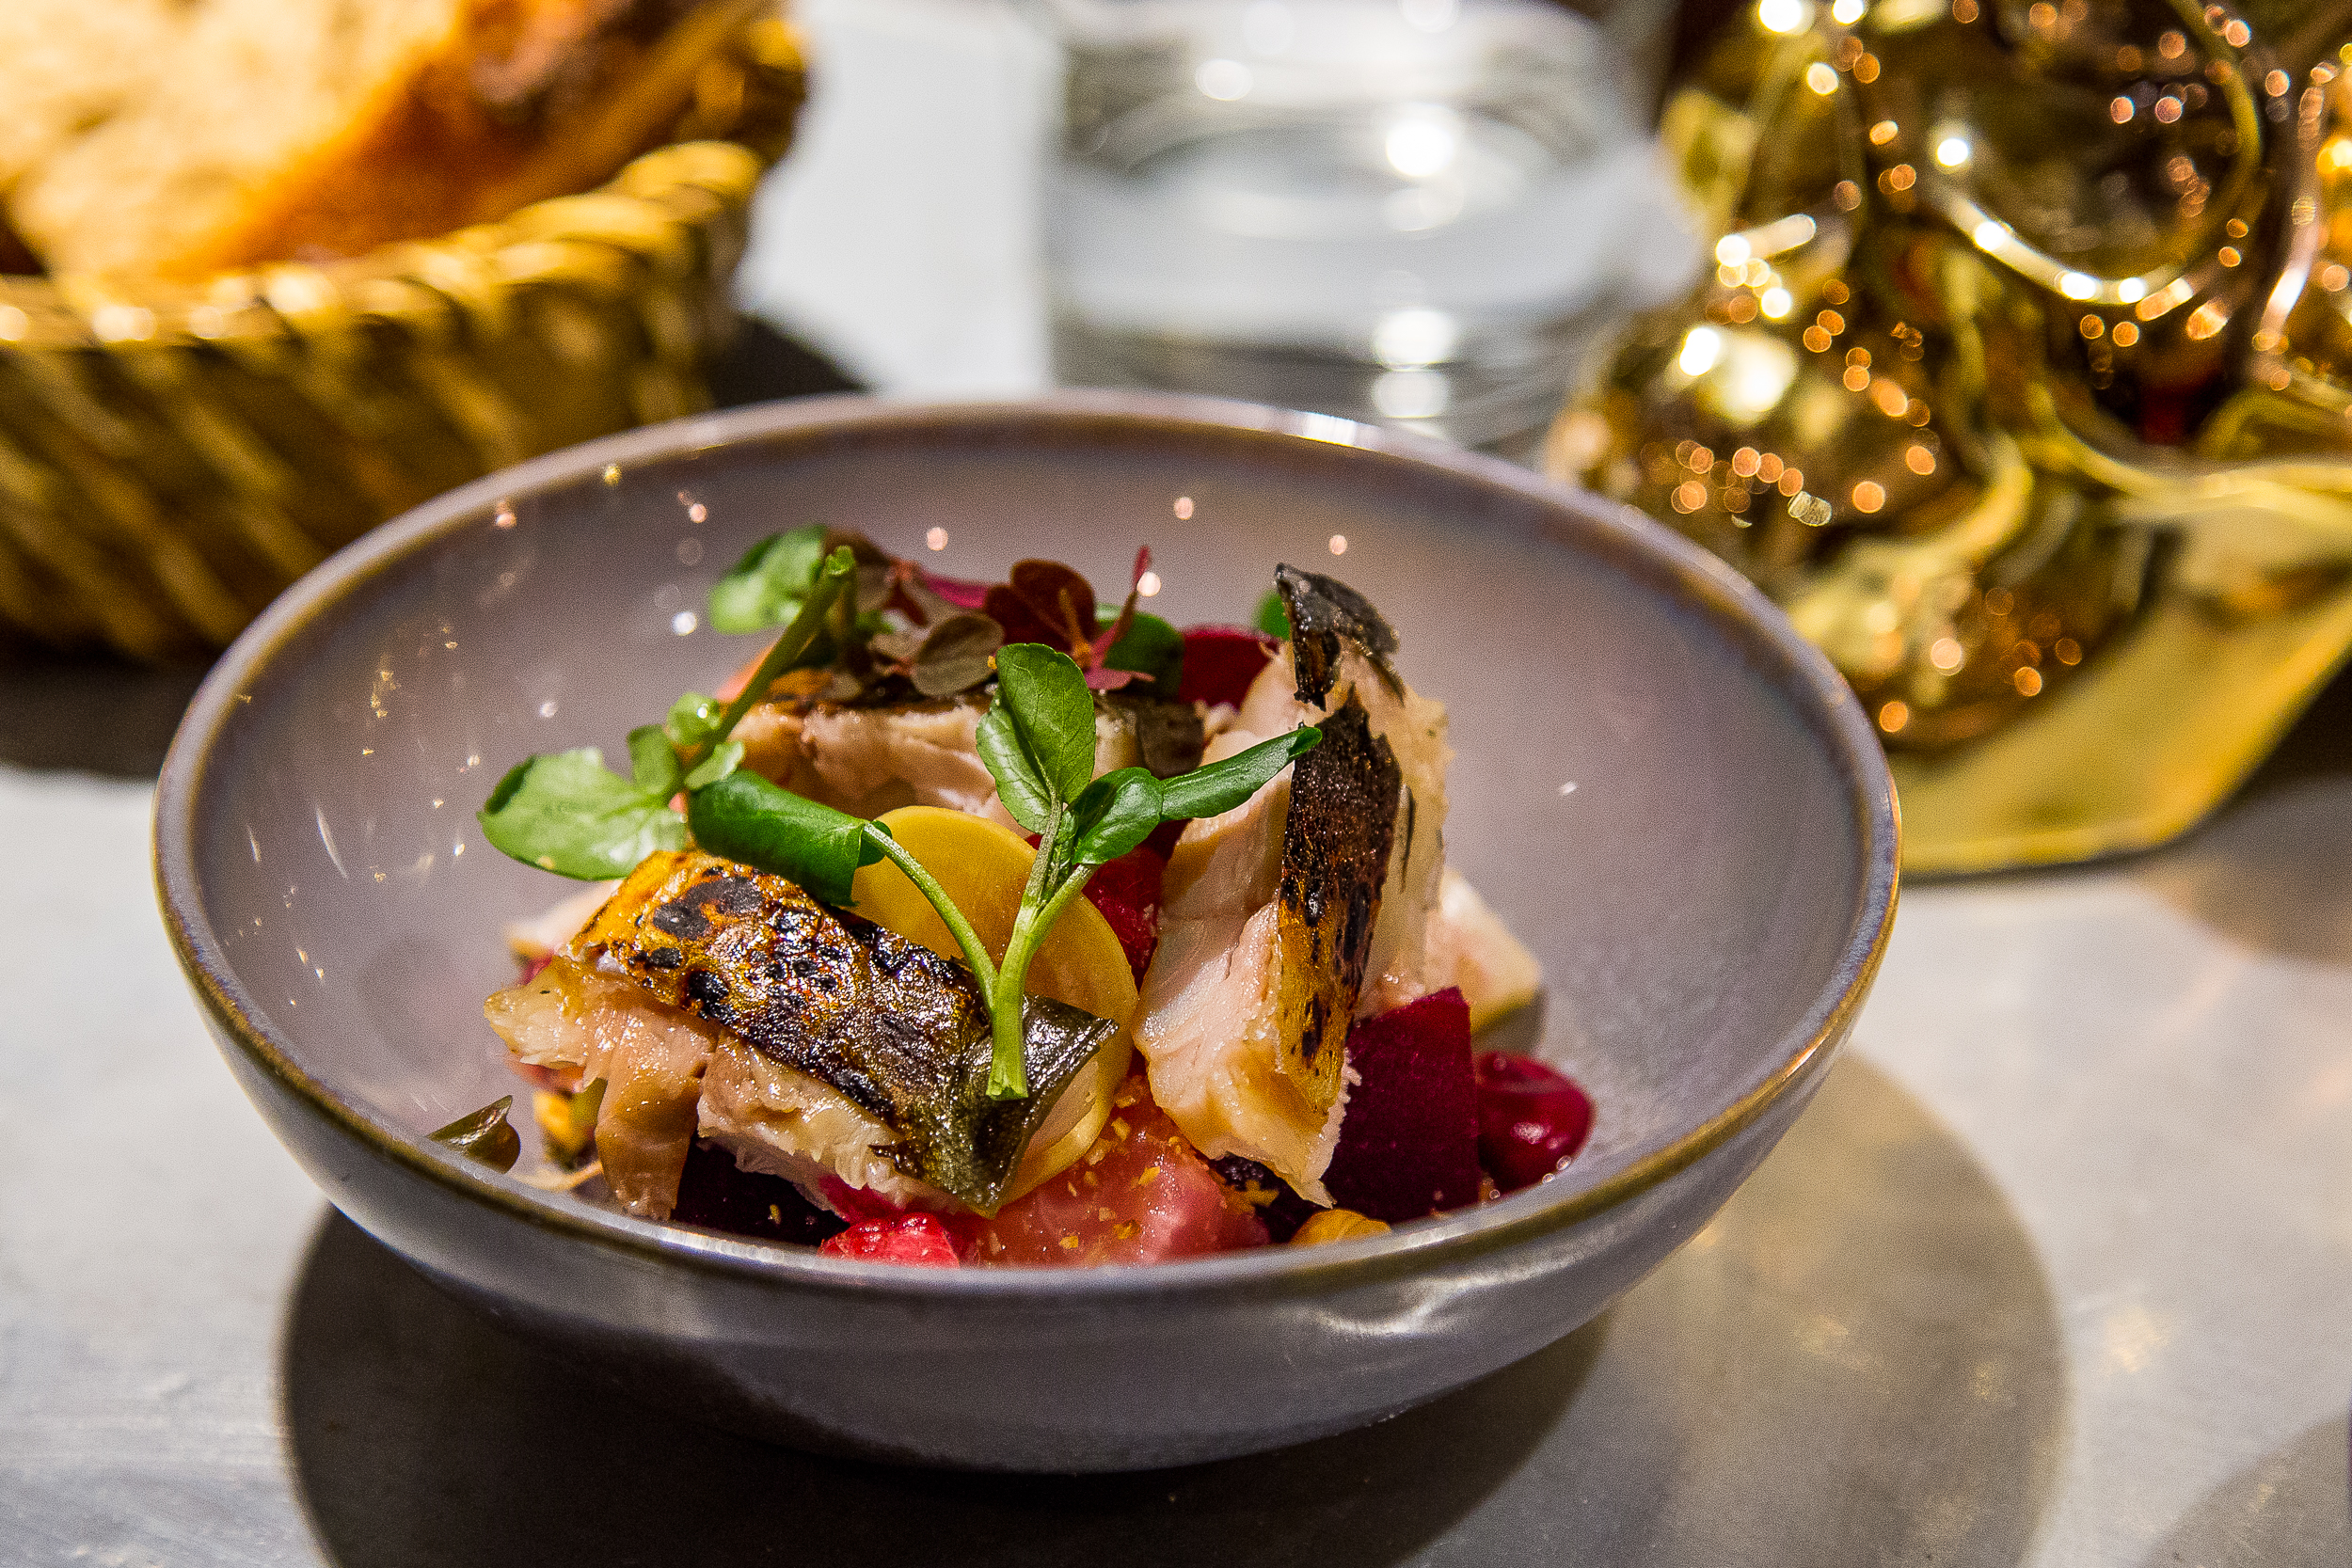 Mackerel with Beets and Cheese